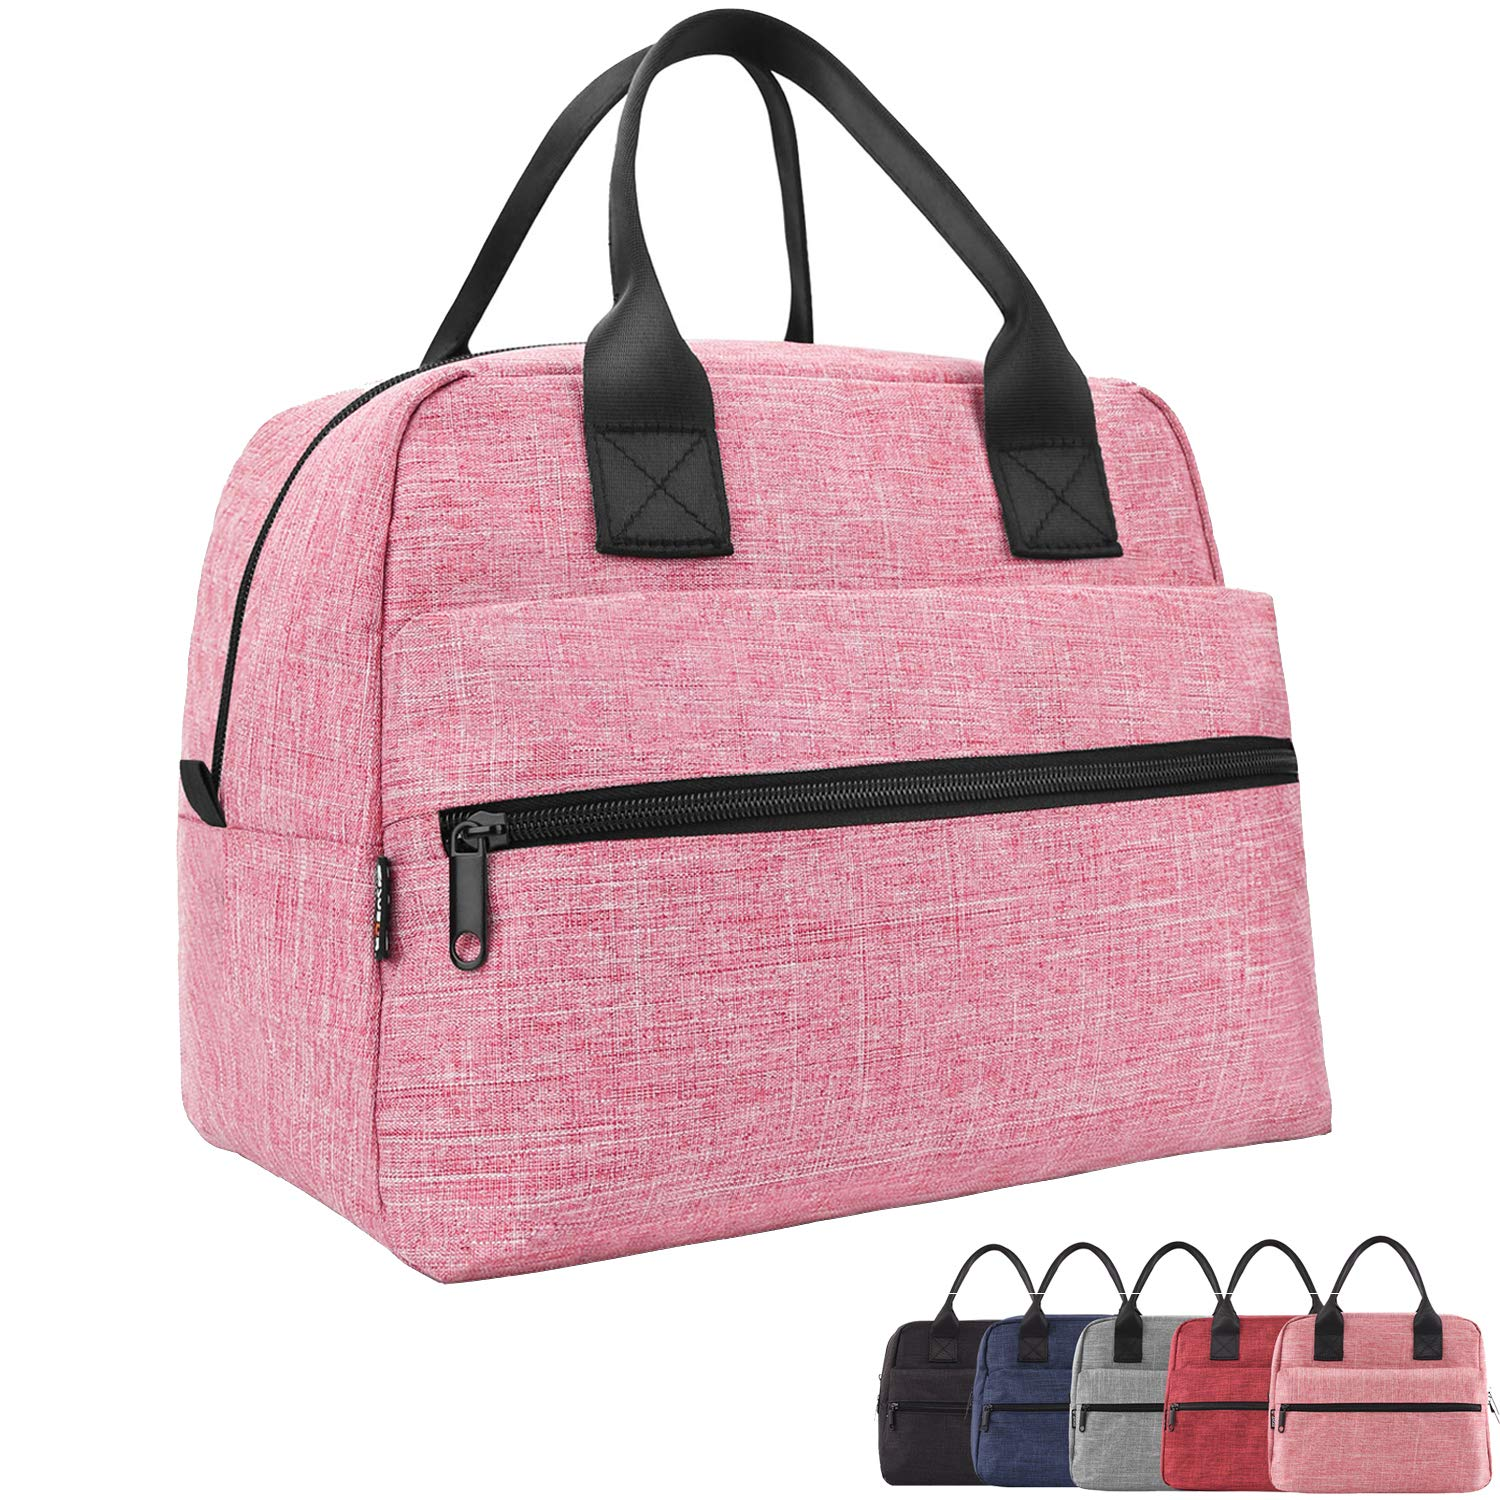 Lunch Bags For Women&Men Insulated Lunch Box For Lunch Cooler Tote(Pink) by EASYFUN